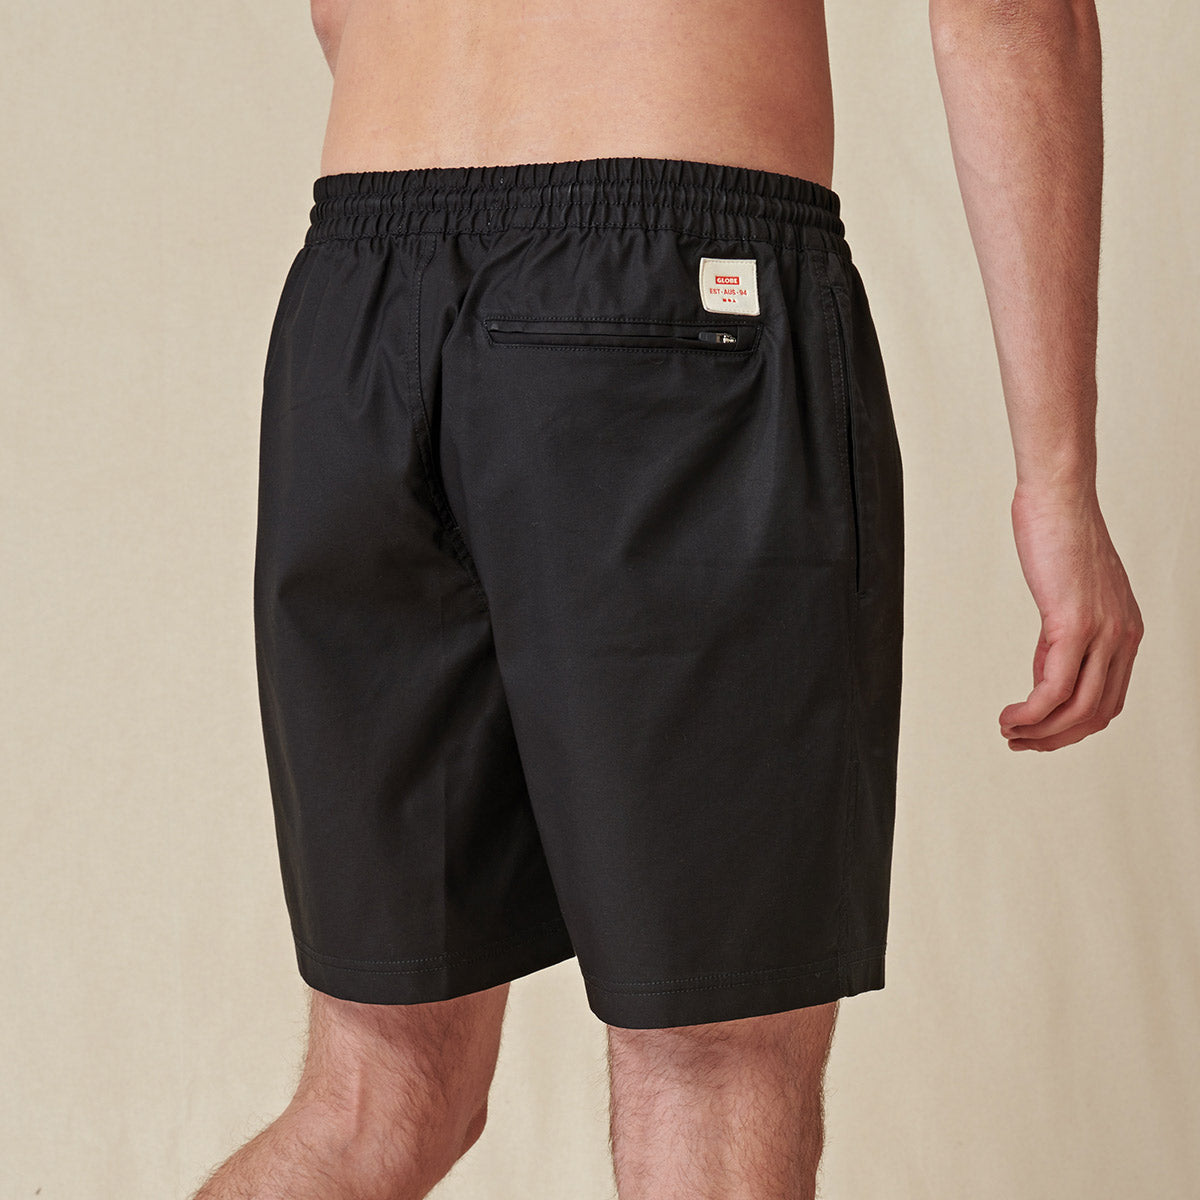 Globe_Clean_Swell_Poolshort_2021_Black_2